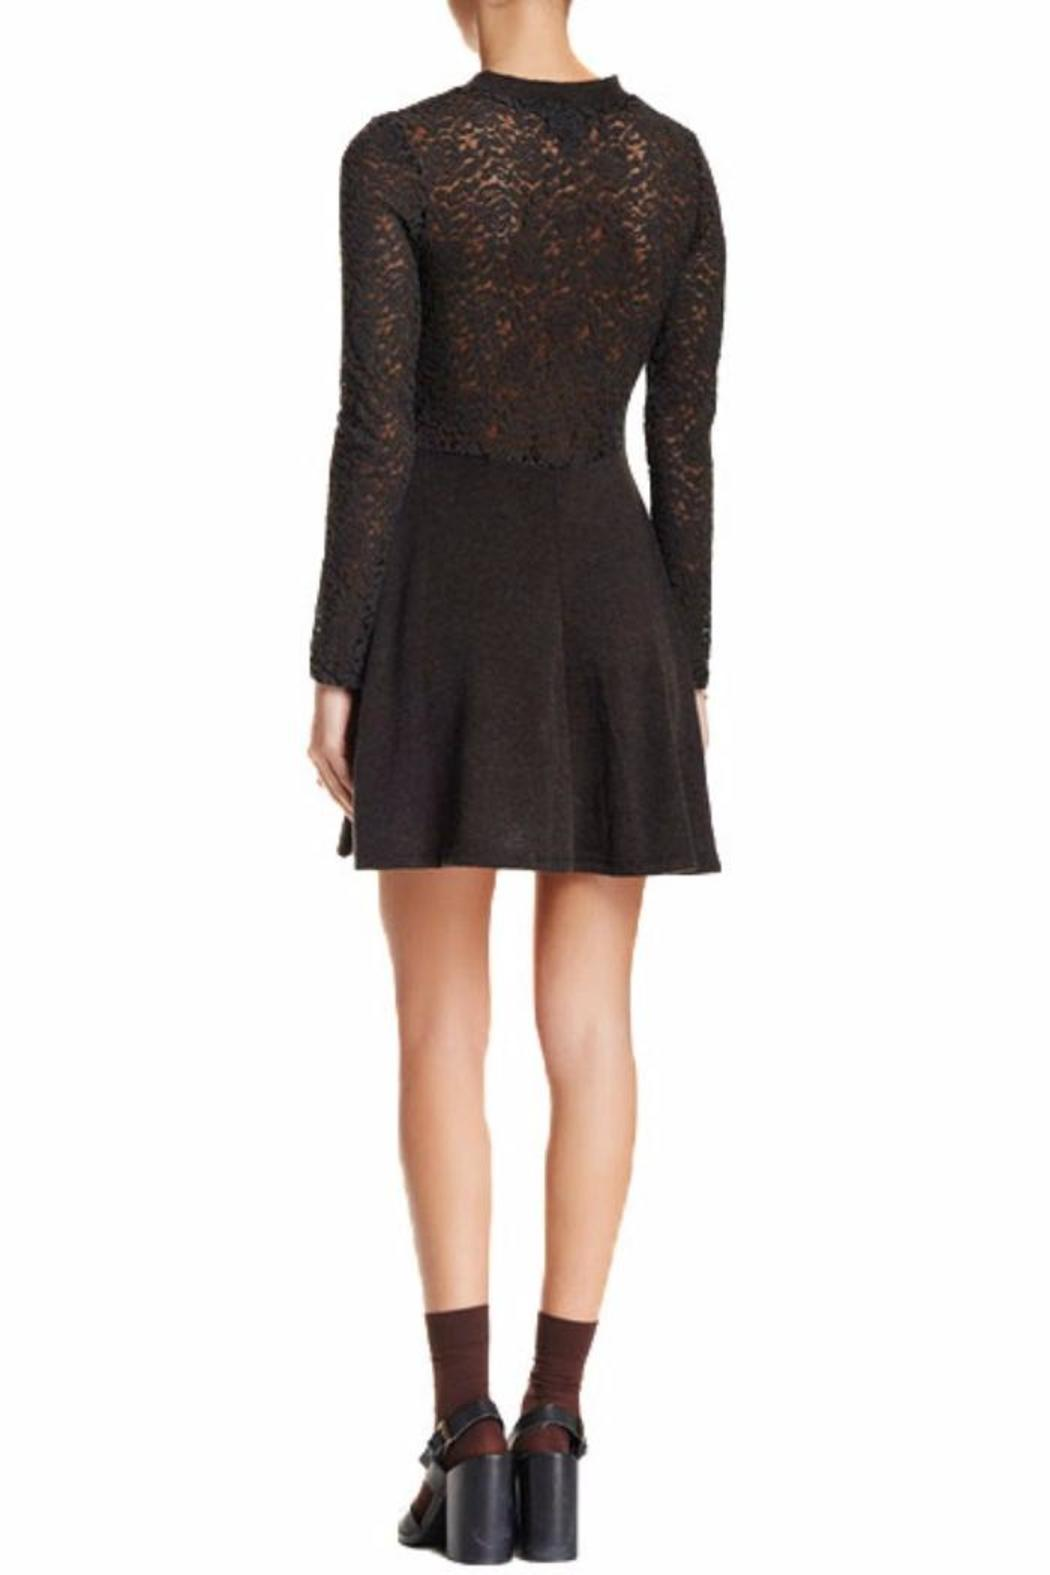 Angie Keyhole Sweater Dress From New Jersey By Making